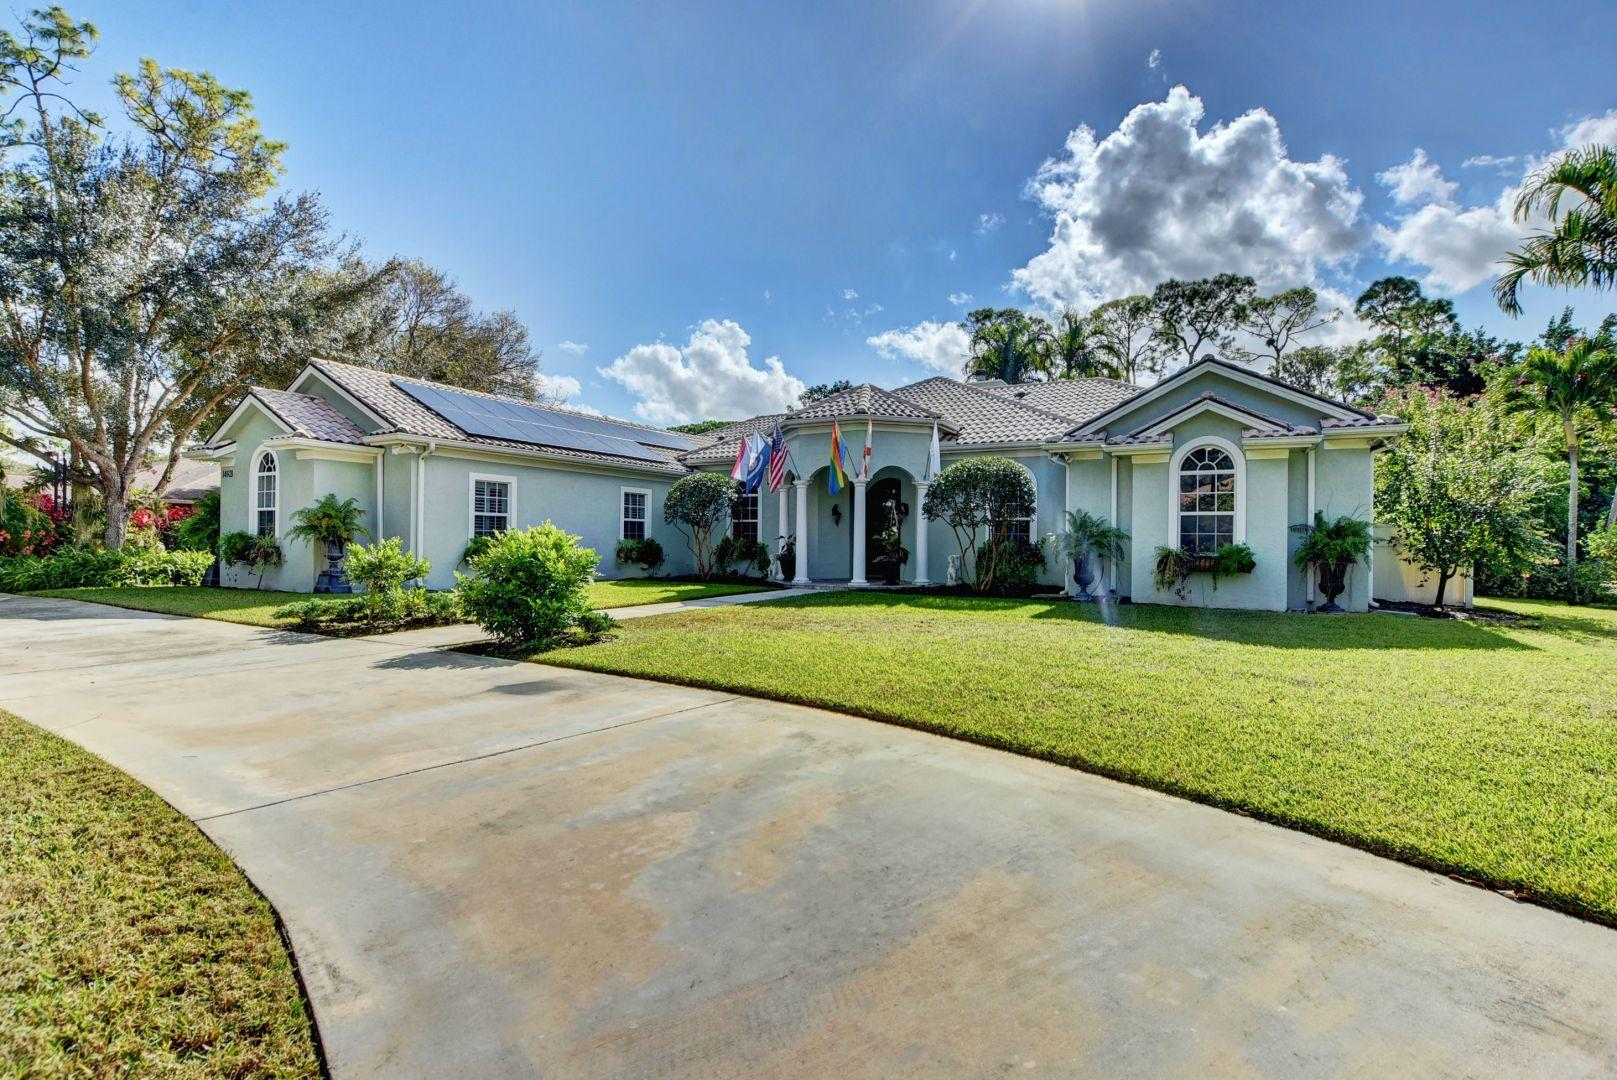 14921 Horseshoe Trace, Wellington, Florida 33414, 4 Bedrooms Bedrooms, ,3 BathroomsBathrooms,Single Family,For Sale,Horseshoe,RX-10568941